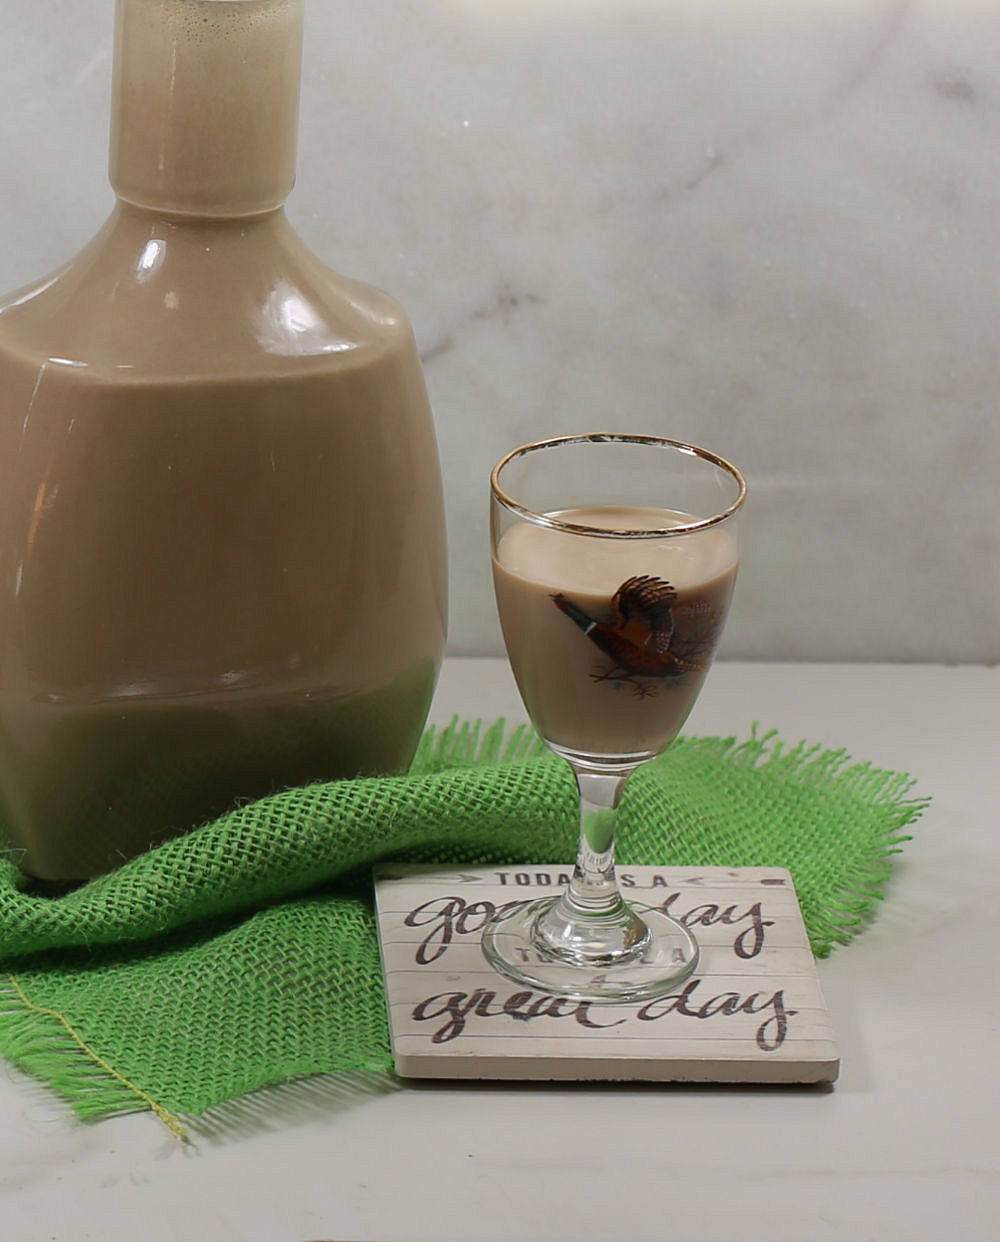 Glass of Baileys Irish cream on a coaster with a green piece of fabric and bottle of Baileys.